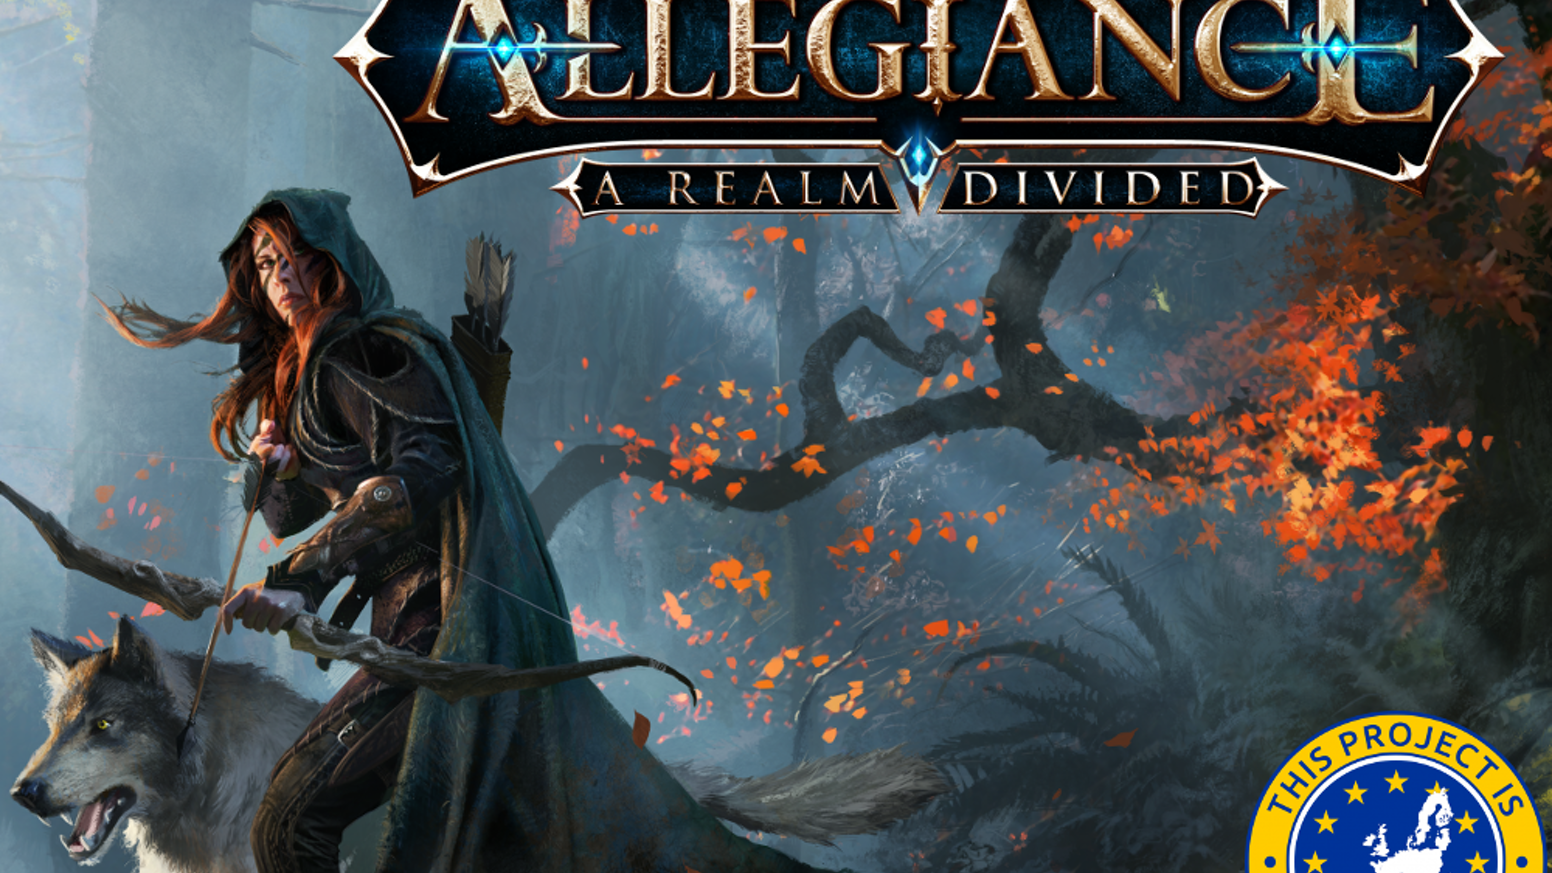 Allegiance A Realm Divided By Underground Games Kickstarter Bolcom Build Your Own Printed Circuit Board Al Williams Fantasy Themed Tabletop Game Card Of Strategy And Tactics Where Players Assume The Roles Powerful Warring Heroes